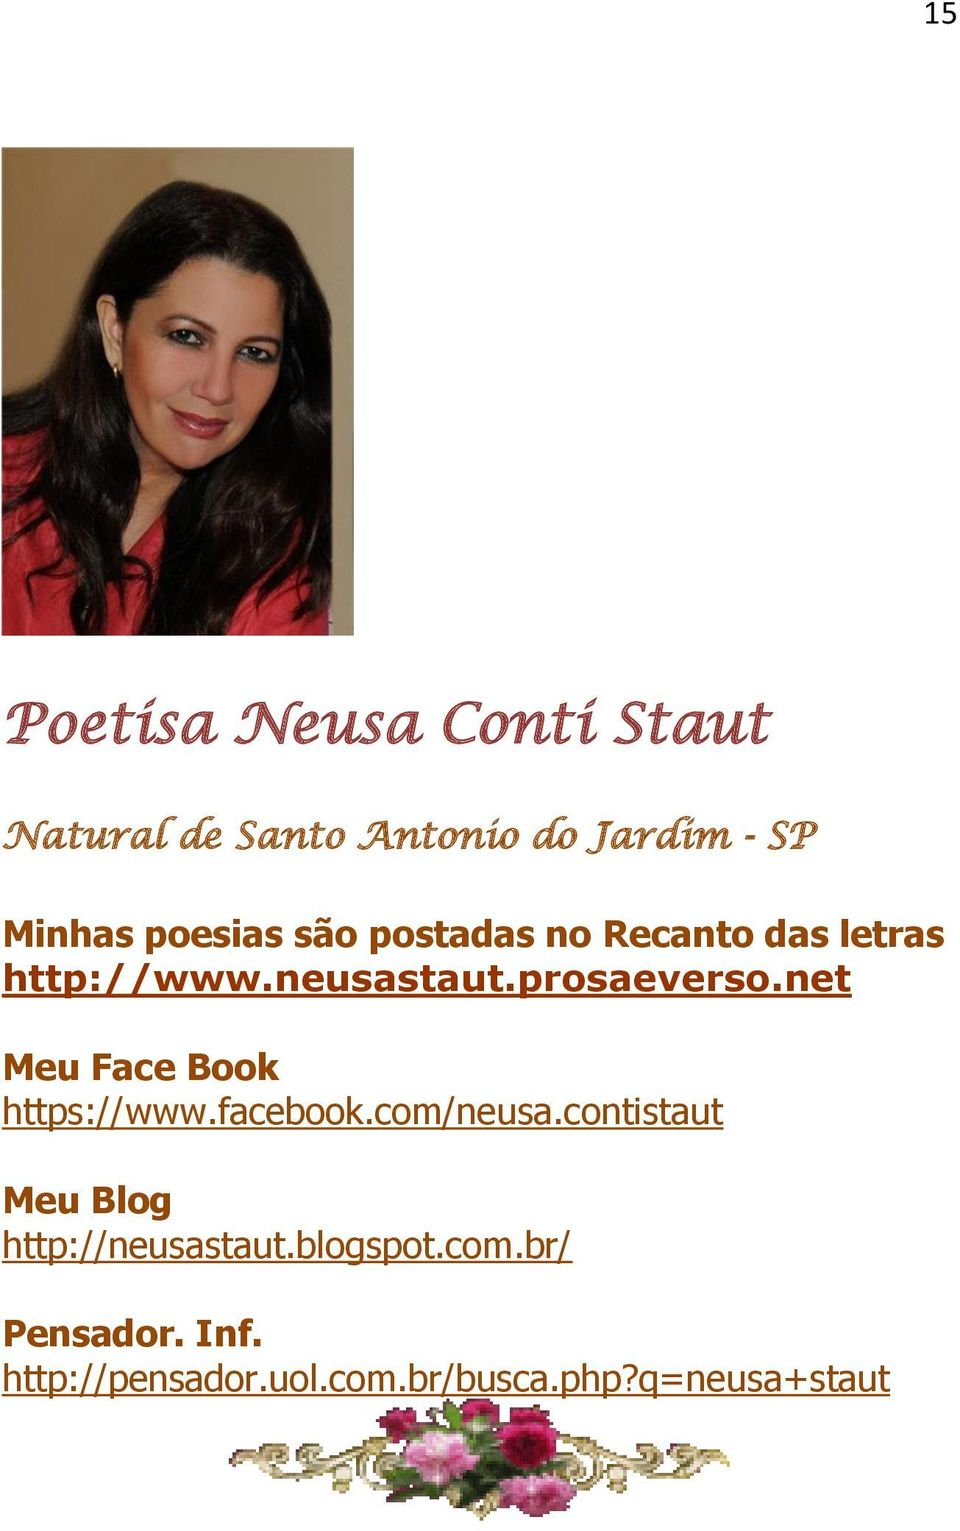 net Meu Face Book https://www.facebook.com/neusa.